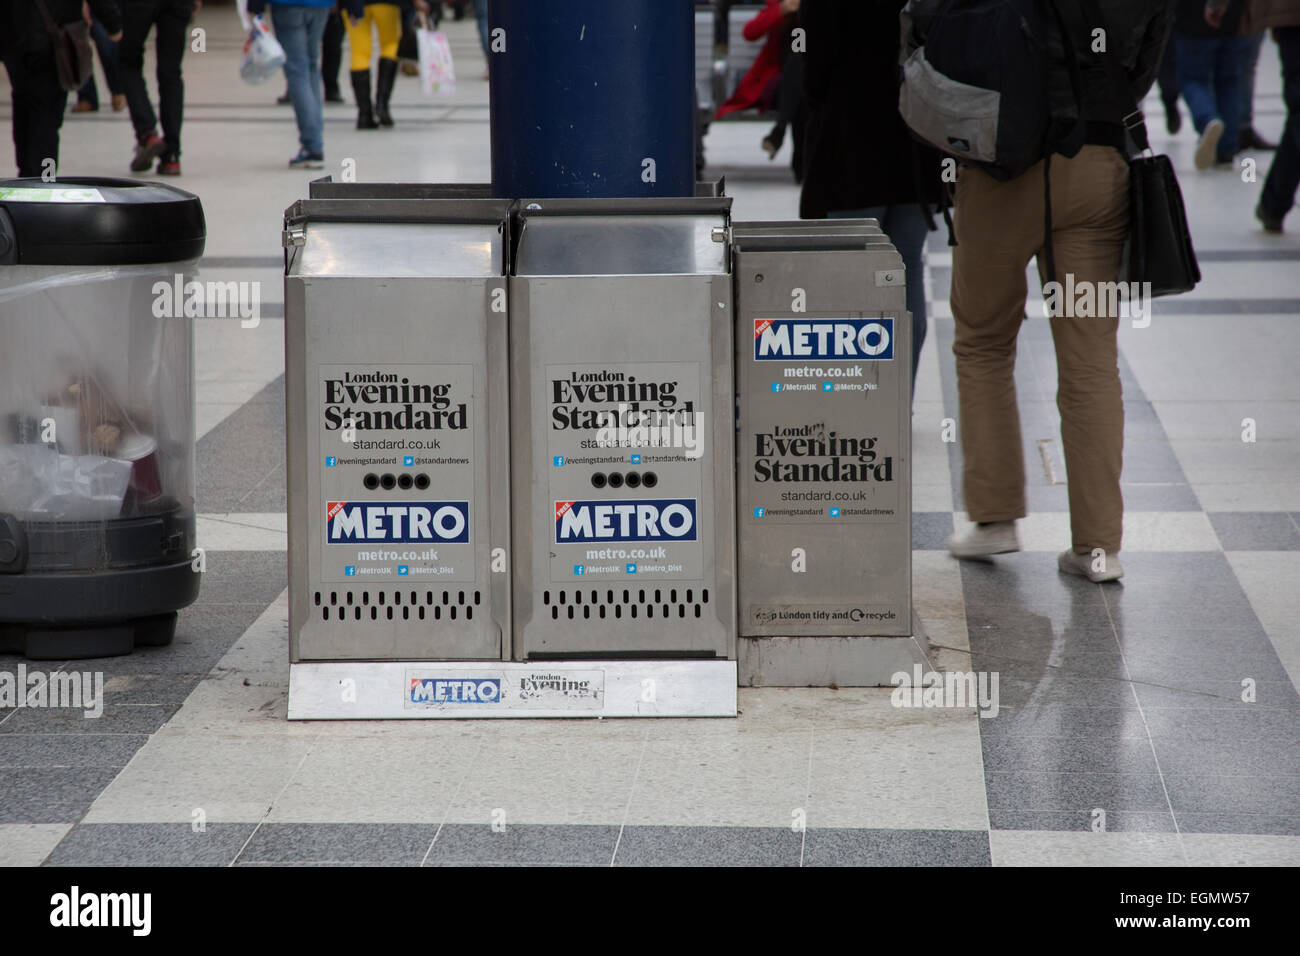 The London Evening Standard and Metro newspaper stands at ...